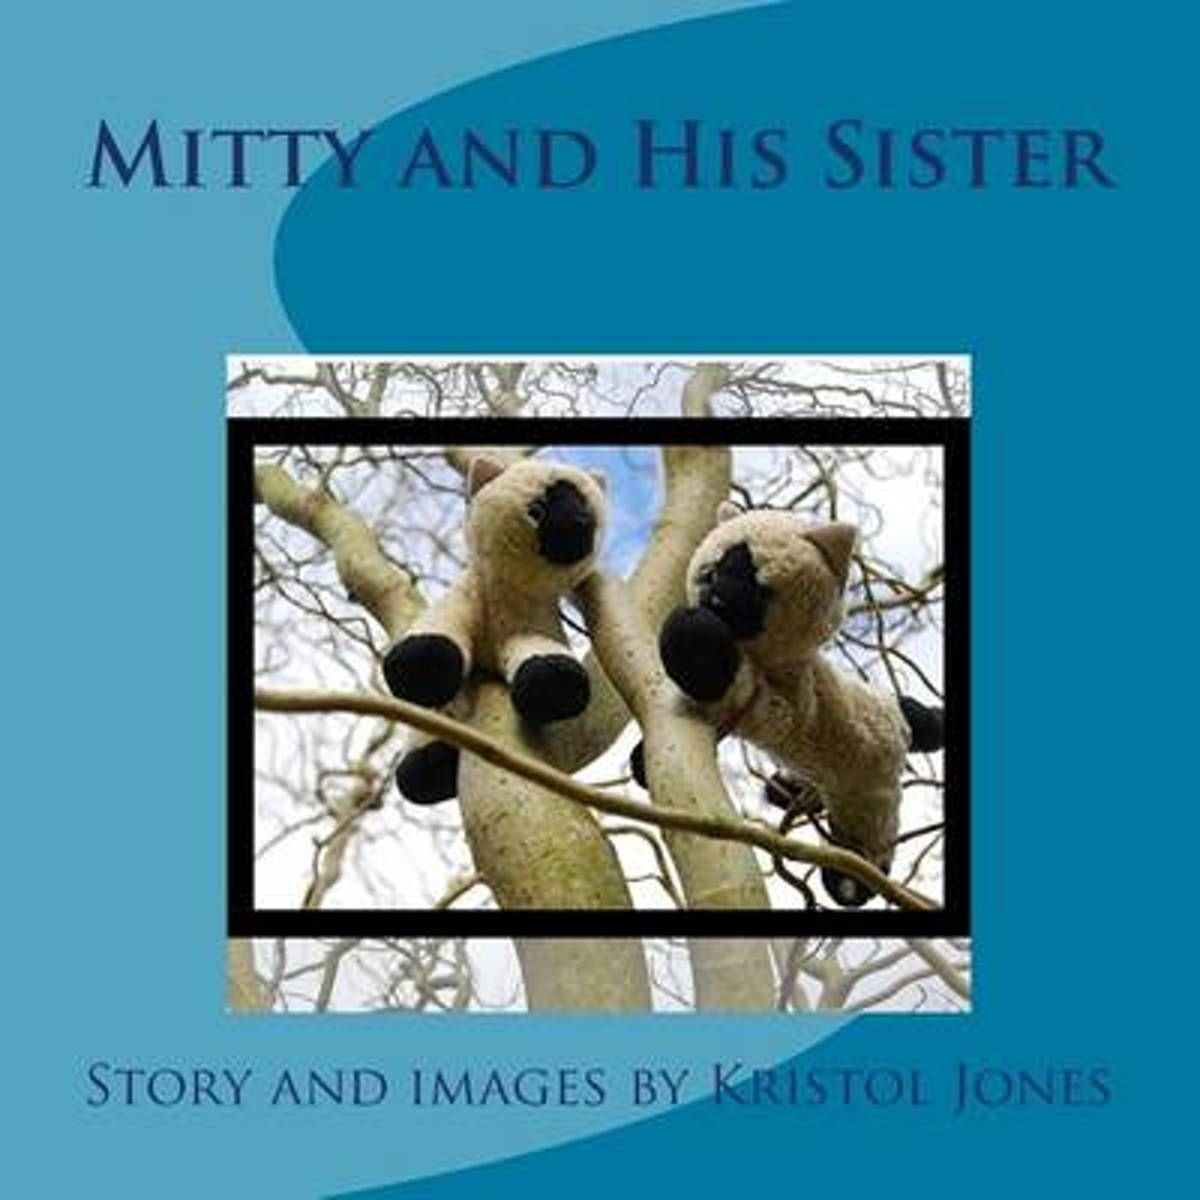 Mitty and His Sister